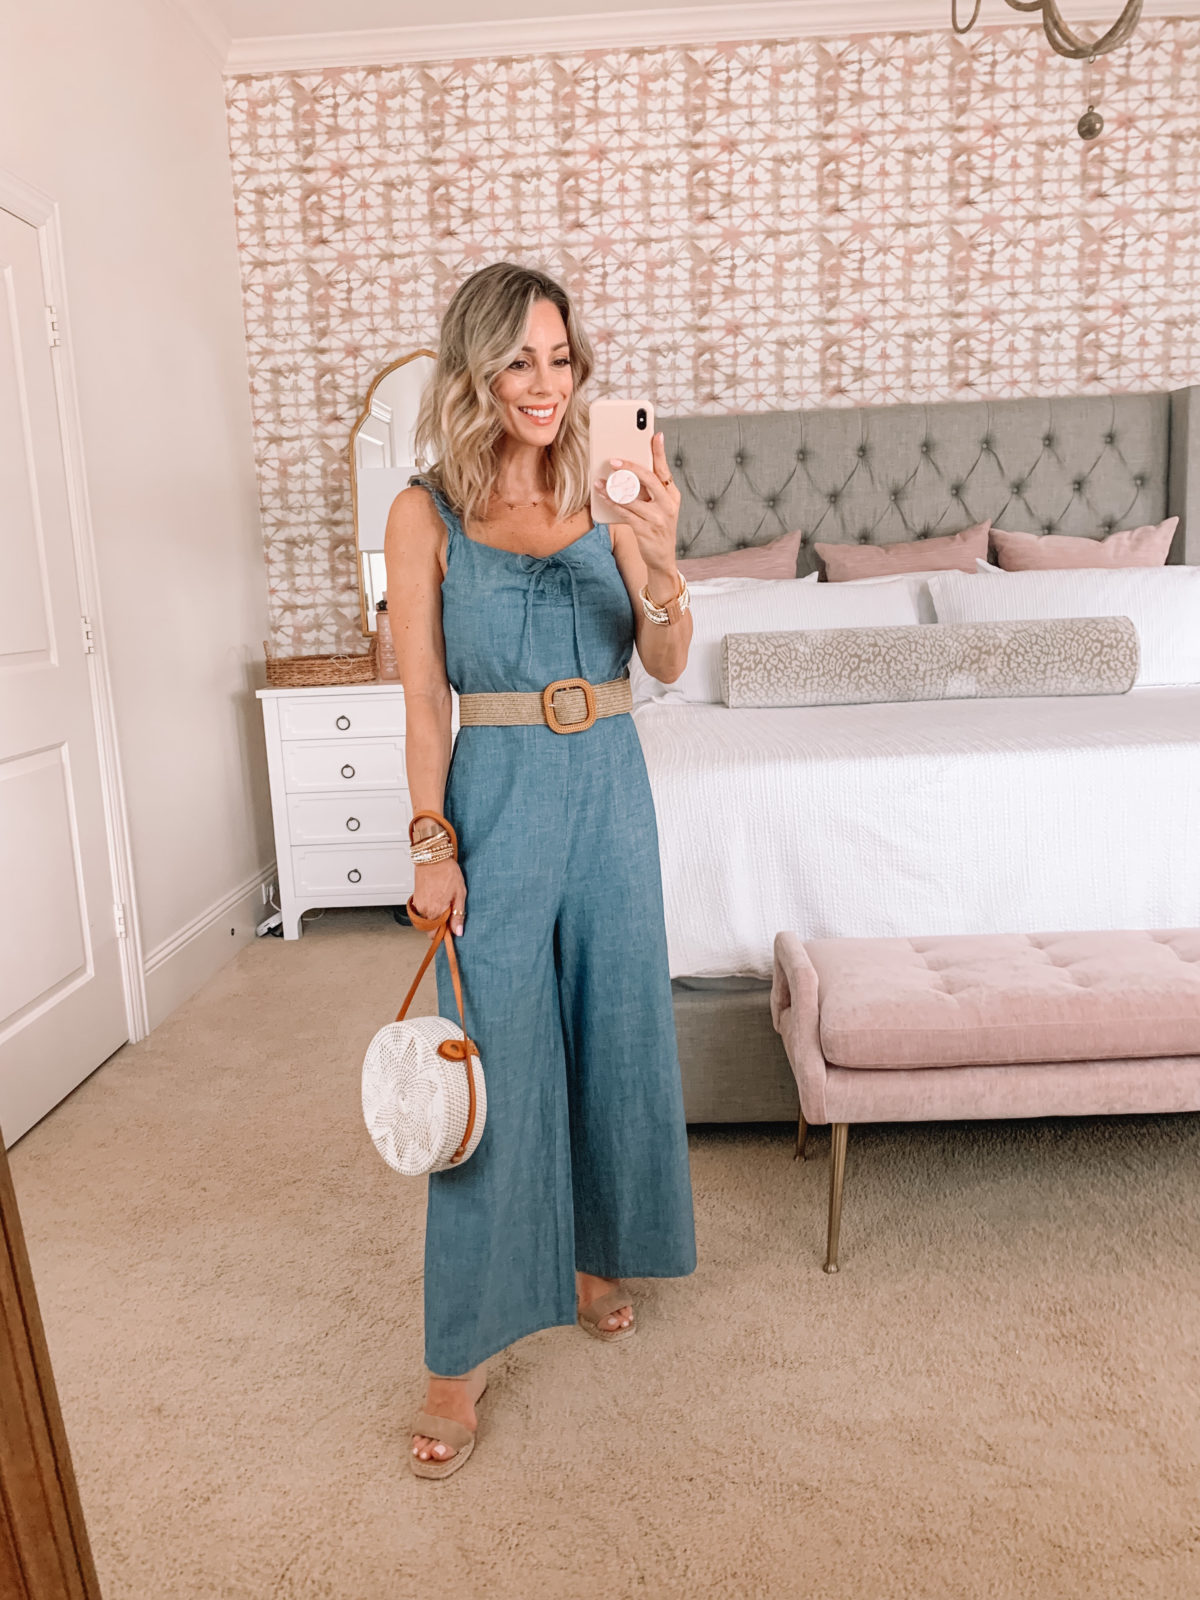 Dressing Room Finds, Chambray Jumpsuit, Woven Belt, Wedges, Crossbody